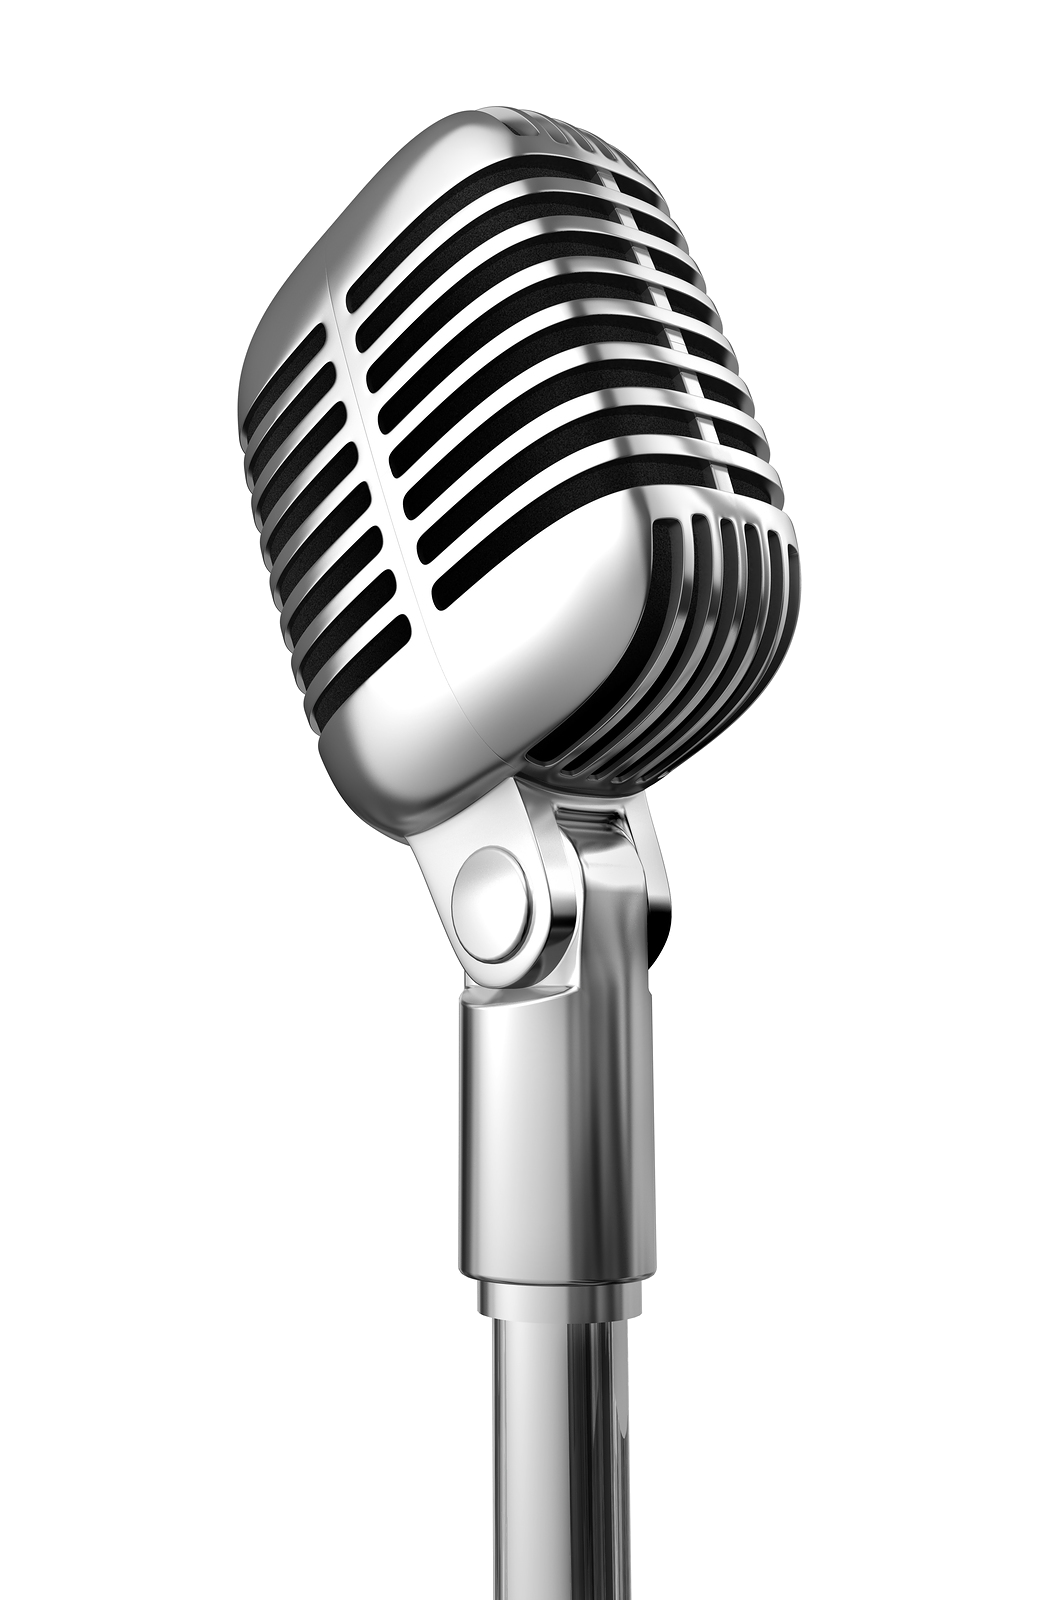 50s microphone clipart png black and white Pin by Jarroddorman on 50\'s microphones in 2019 | Vintage microphone ... png black and white